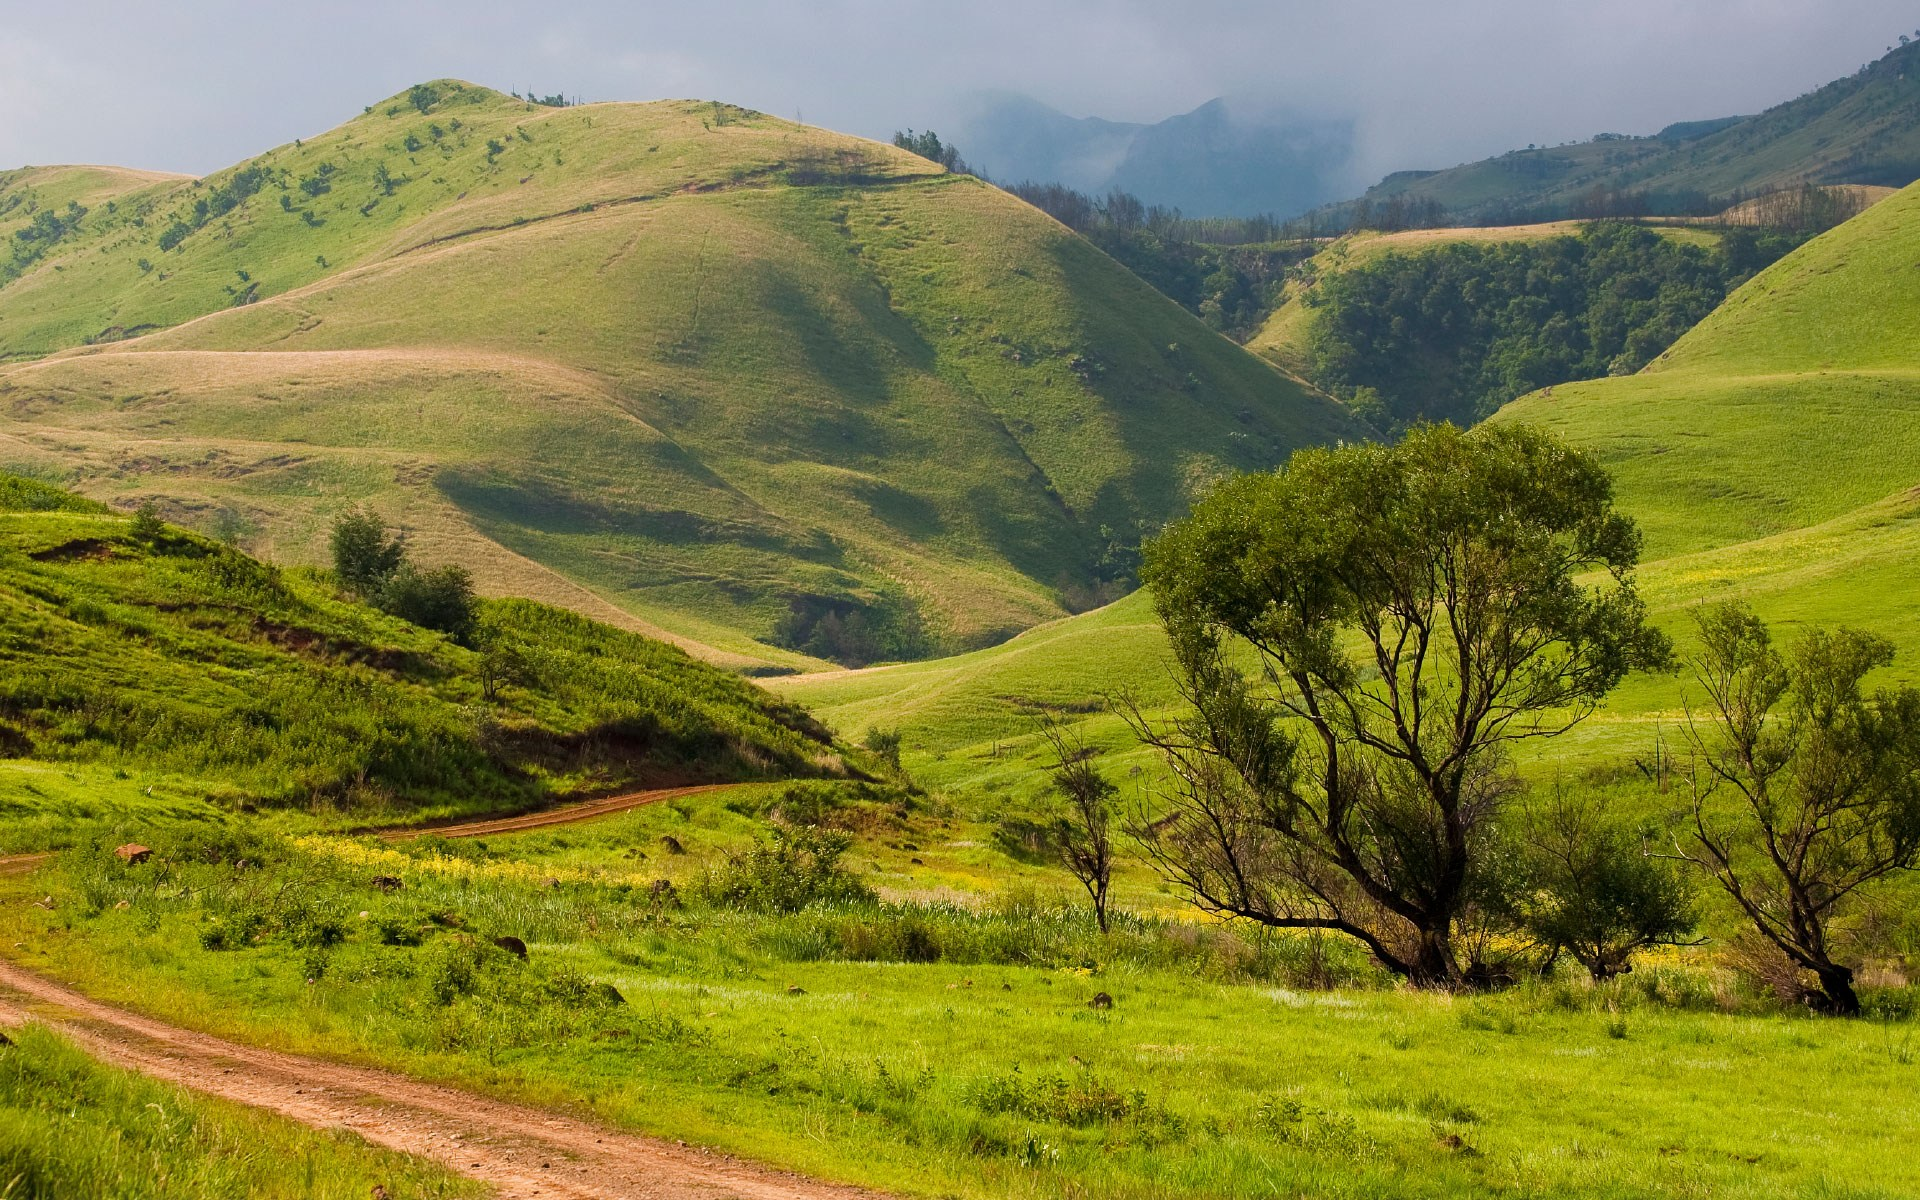 South Africa Land of Beauty and Splendor | Jaksonian Philosophy